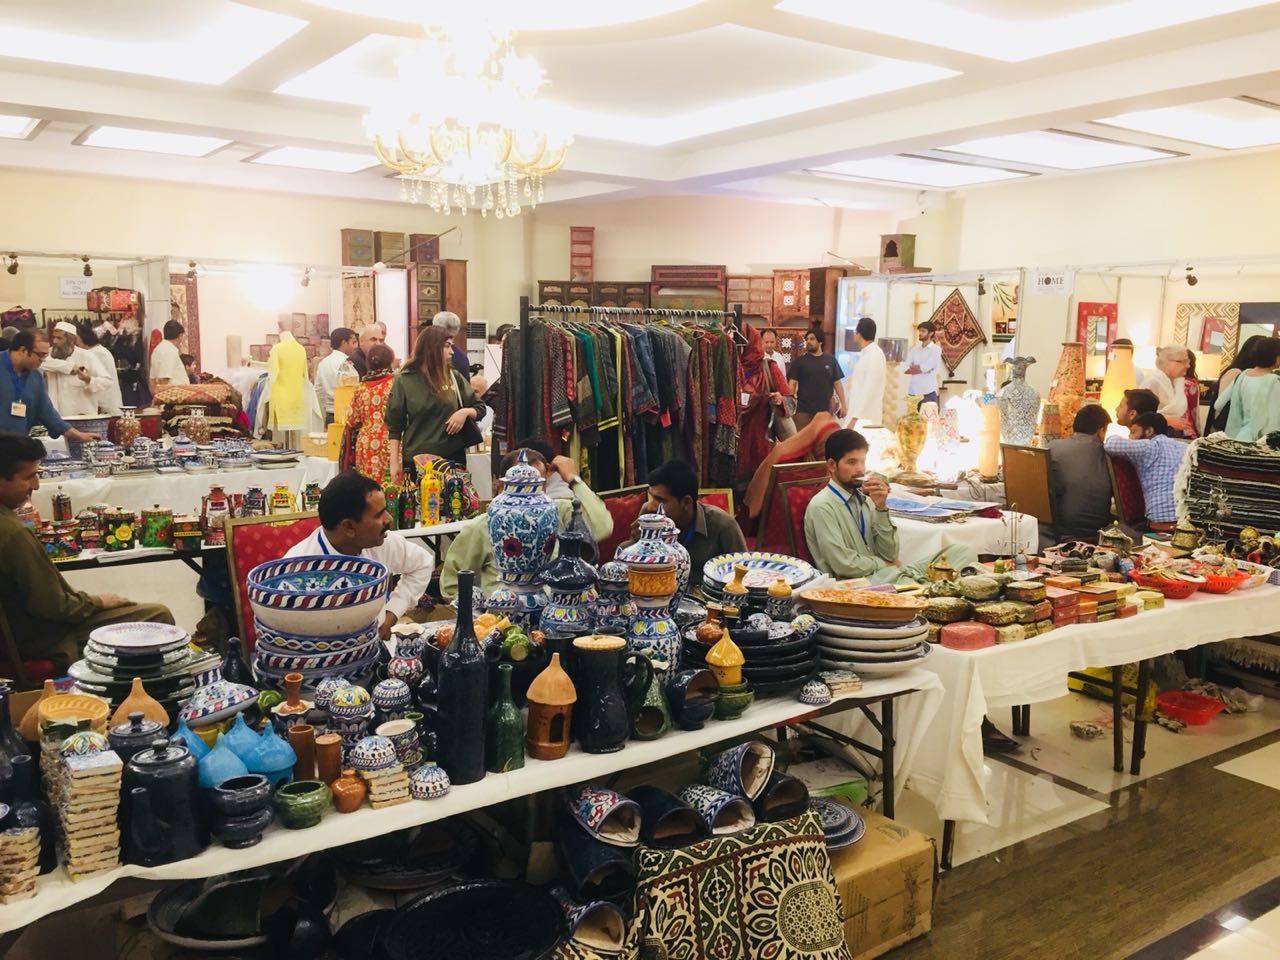 Daachi Arts and Crafts Exhibition in Lahore